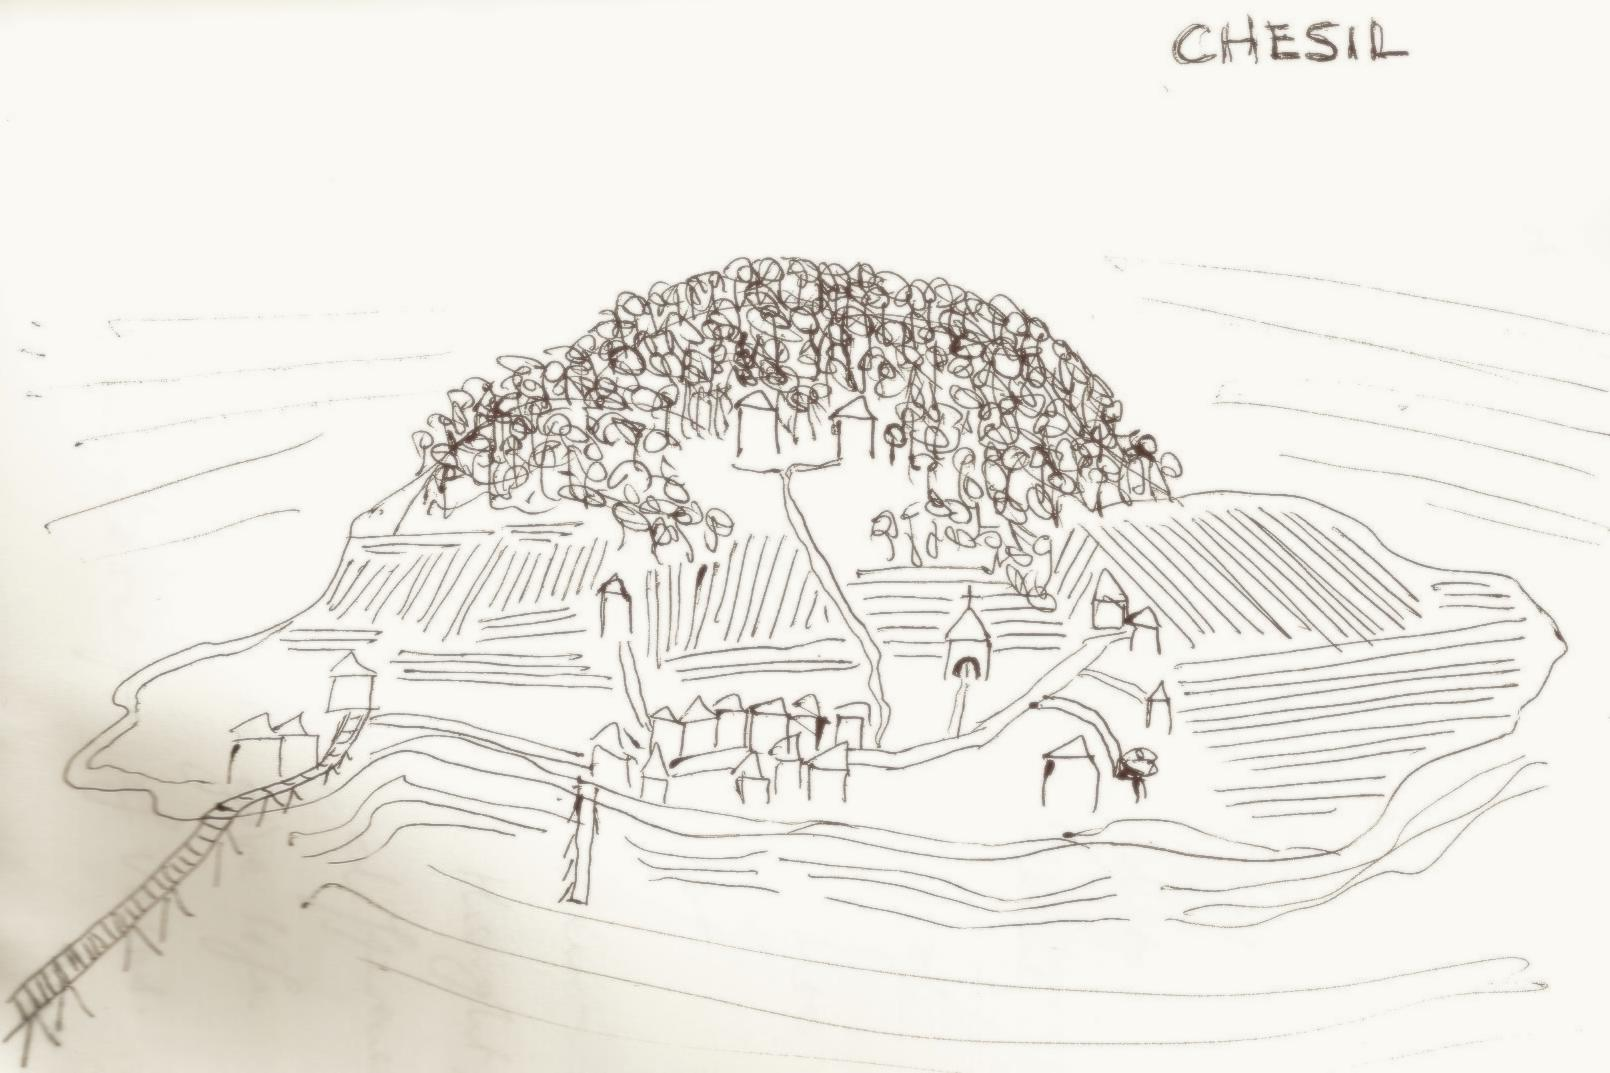 Chesil drawing